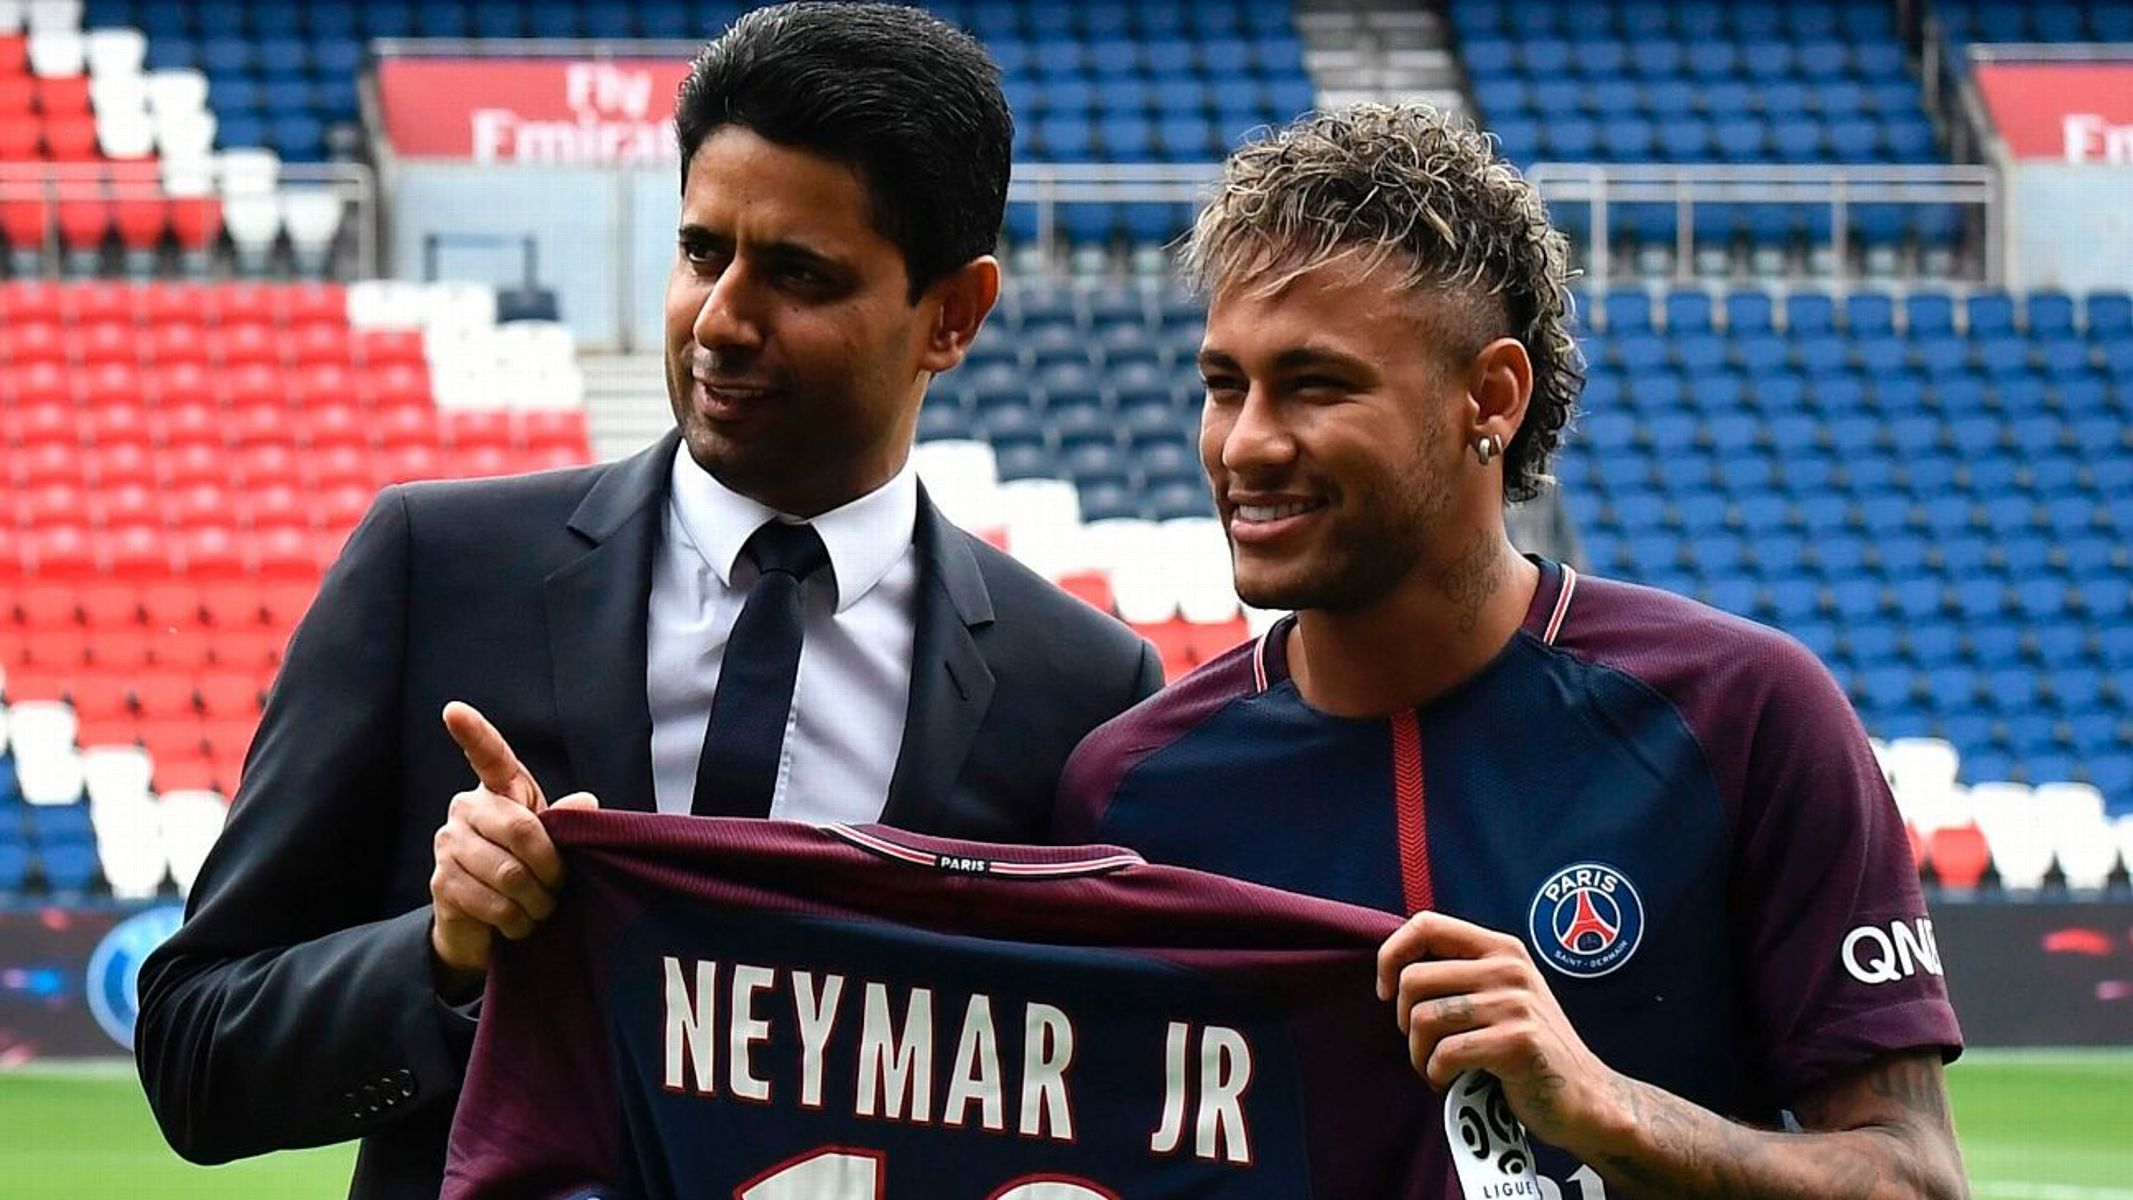 Most influential transfers ever: Neymar to PSG, Cantona to Man United, and more